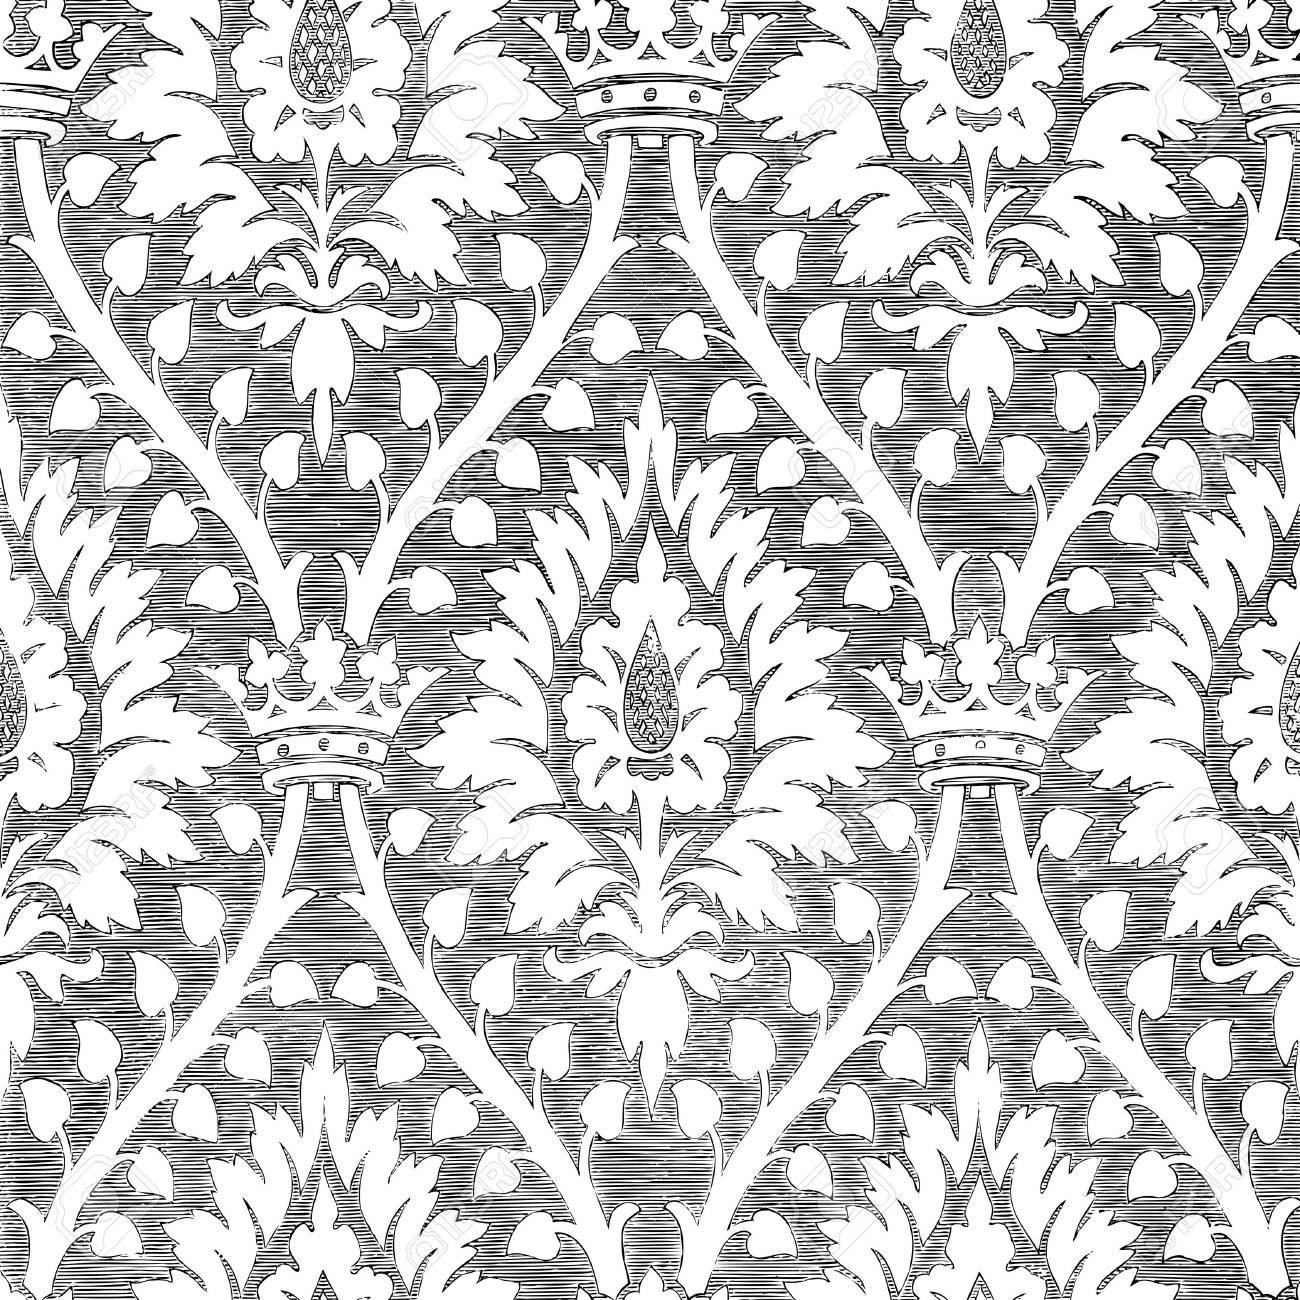 Vintage Metallregal Abstract Hand-drawn Floral Seamless Pattern With Crown, Vintage.. Royalty Free Cliparts, Vectors, And Stock Illustration. Image 42063881.